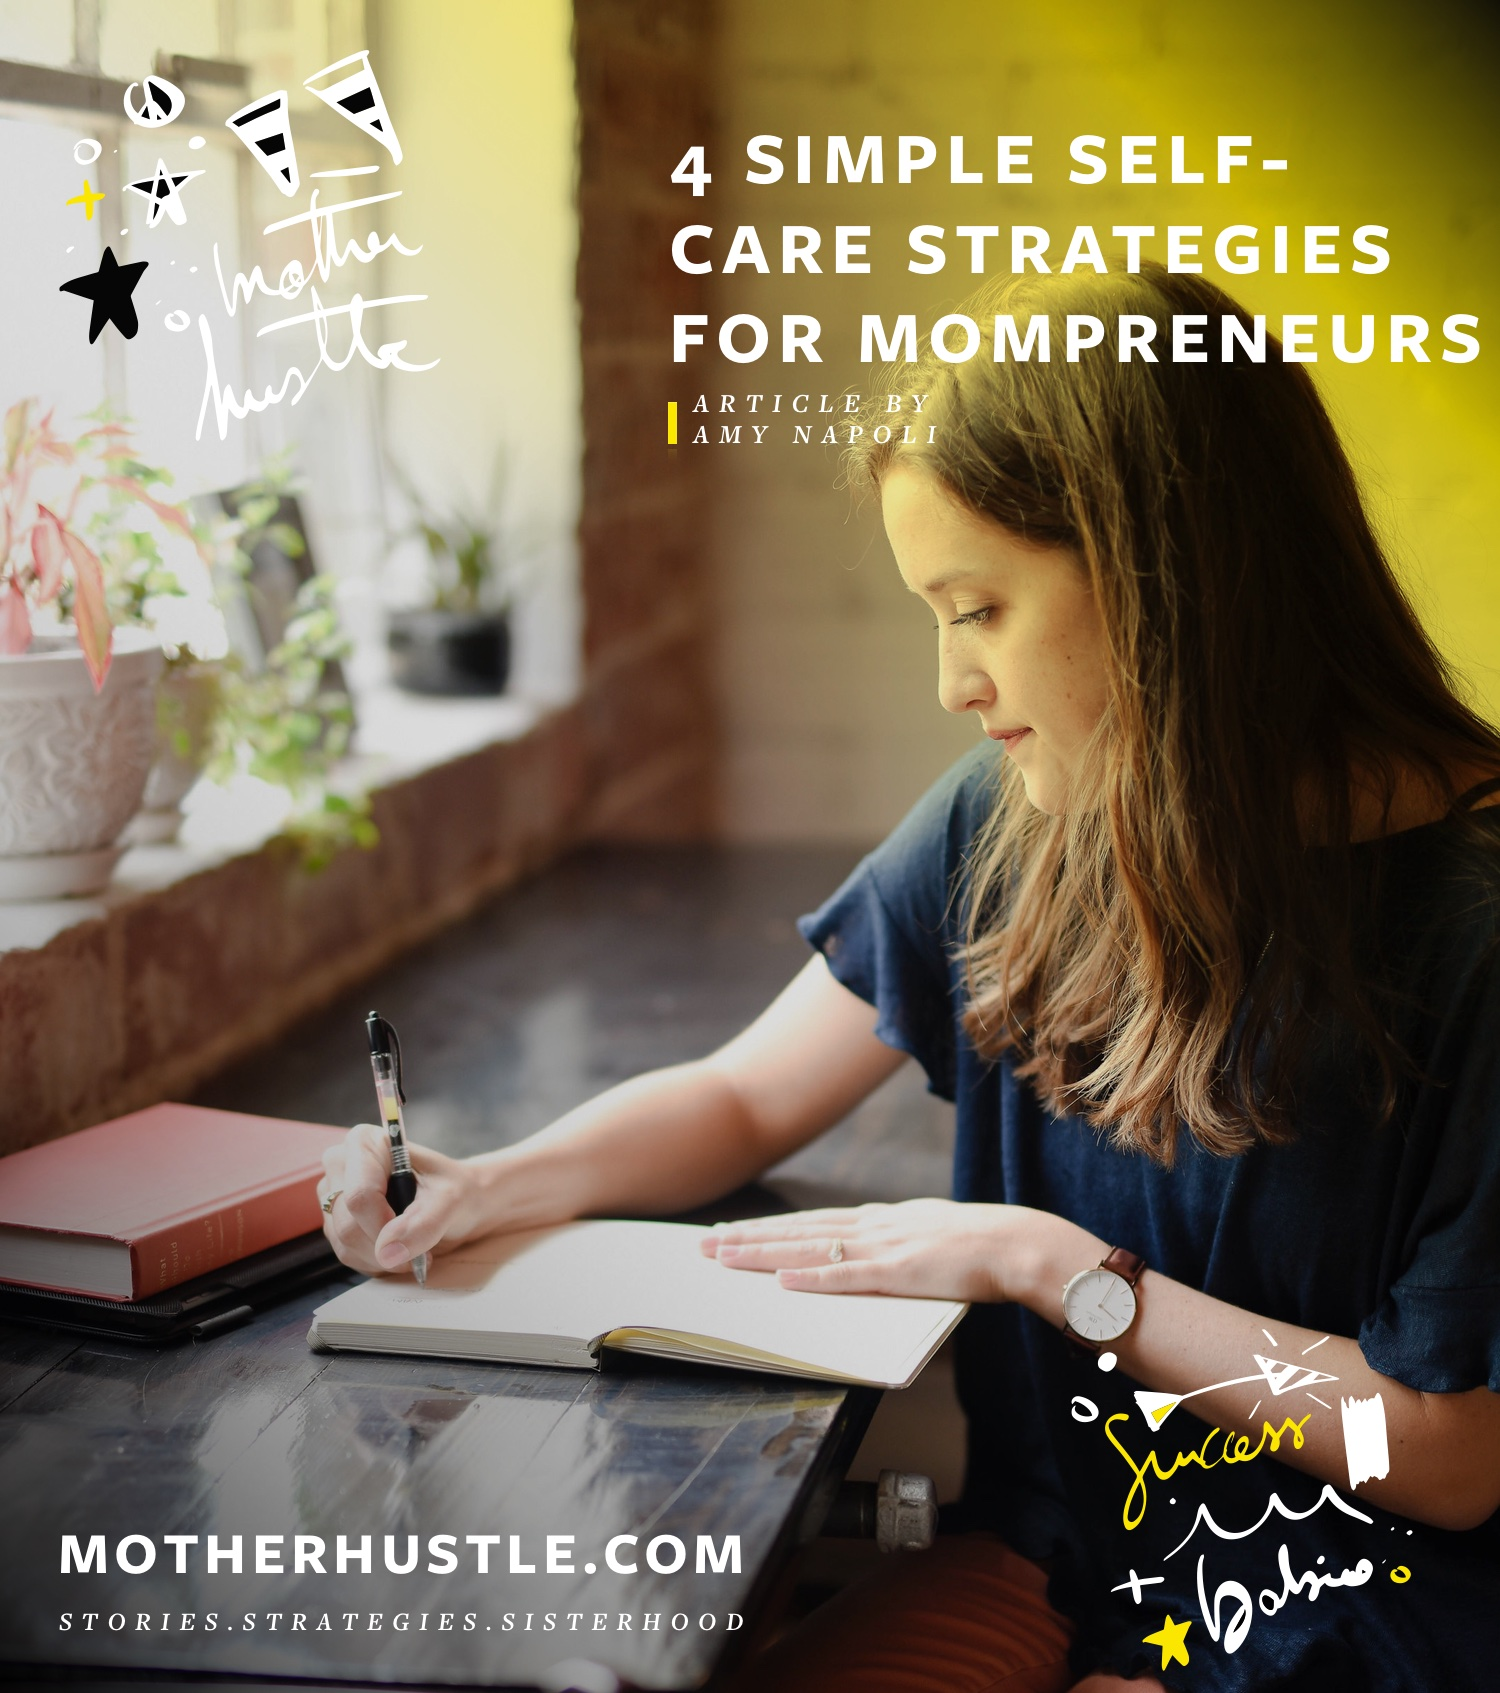 4 Simple Self-Care Strategies for Mompreneurs - by Amy Napoli for MotherHustle